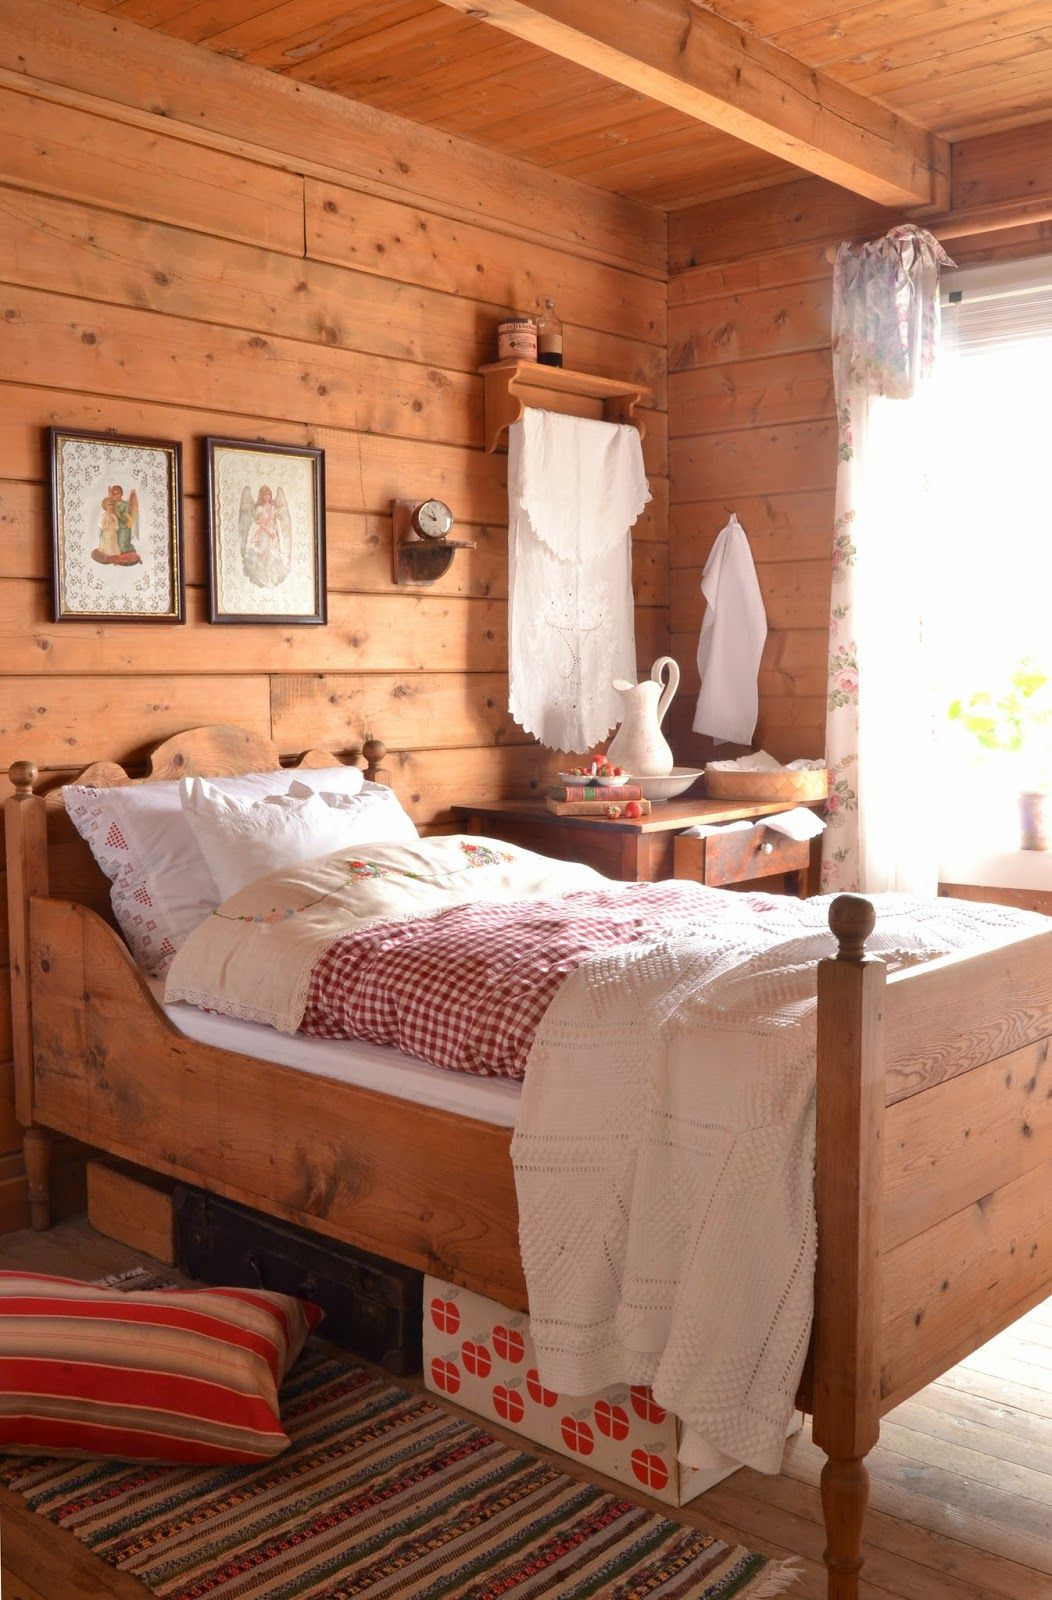 This Bed Is Gorgeous - Beautiful Rustic Room